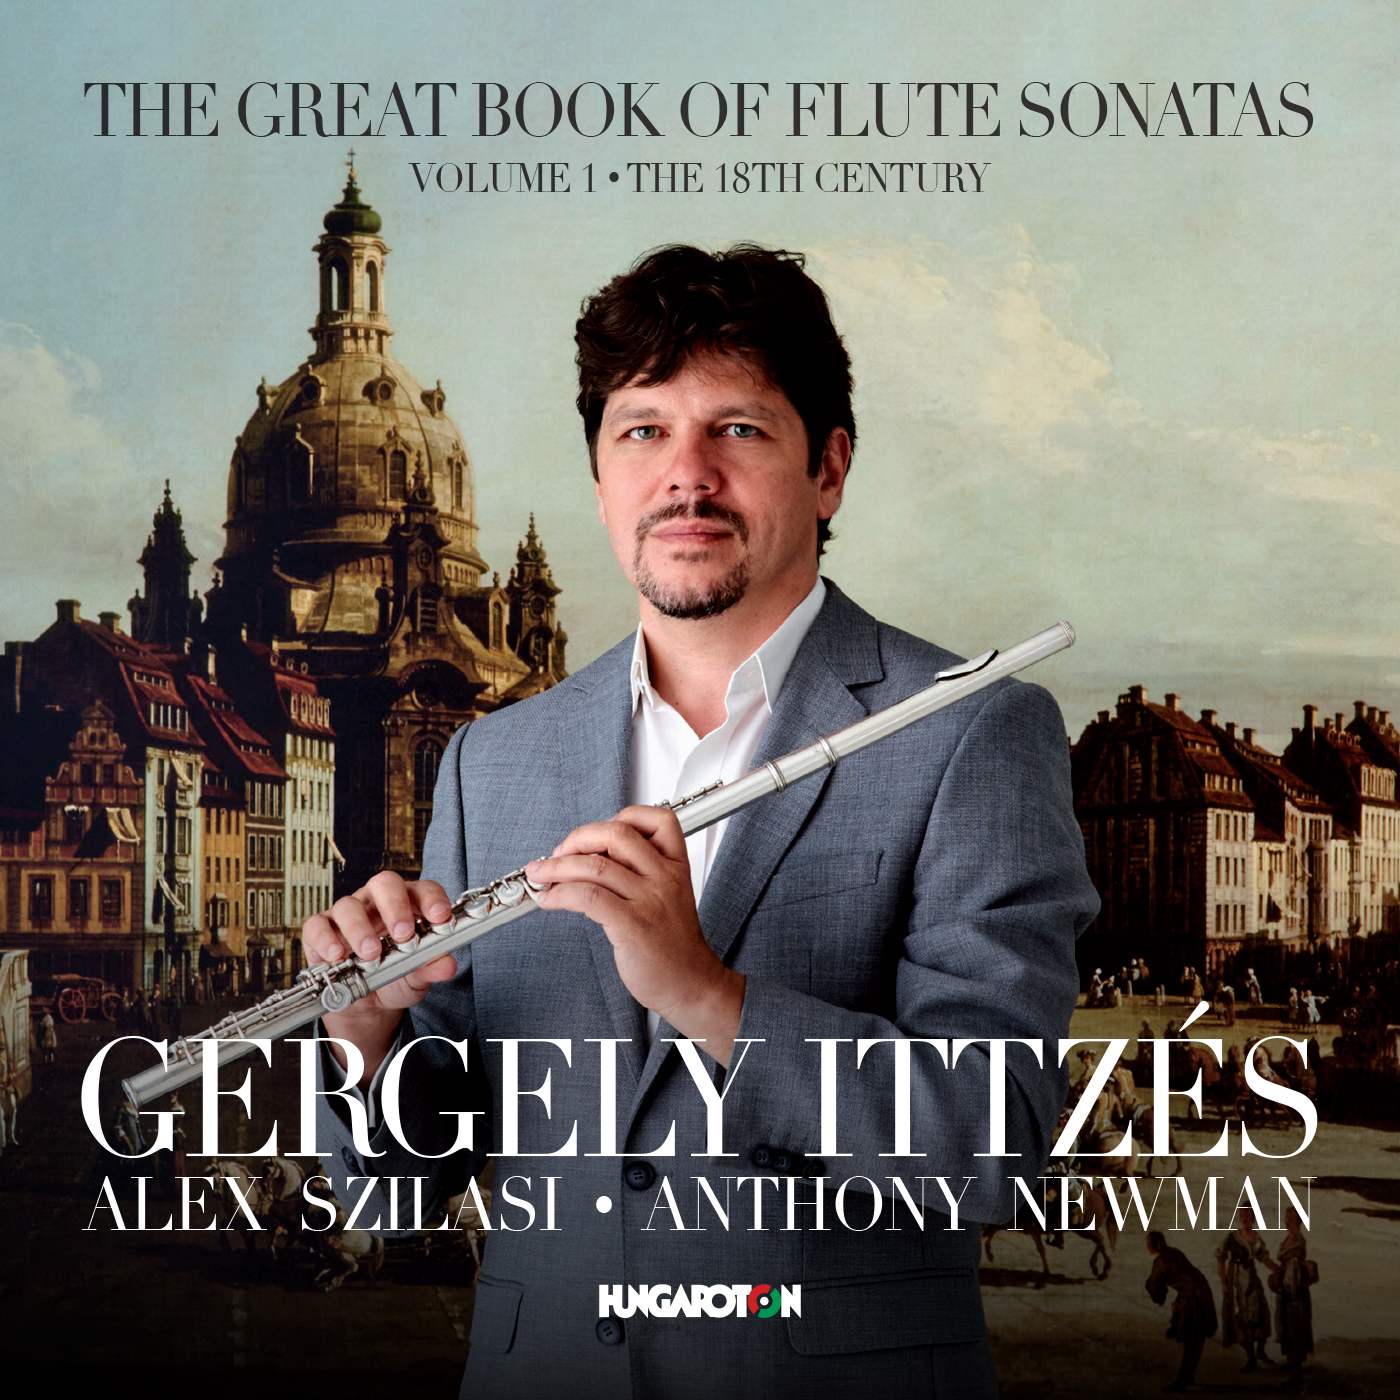 An Unbroken Line of Success: Hungaroton Album Yet Again Nominated for ICMA - After two successive years, Hungarian record label Hungaroton has yet again produced a nominee for the International Classical Music Awards (ICMA). The Great Book of Flute Sonatas, made up of seven extraordinary albums, has been selected to compete in the Best Collection category at ICMA 2019. The CD collection, arching over three centuries of flute music and featuring Gergely Ittzés on the flute boasts several raving reviews. The list of candidates was announced by Luxembourg-based musicologist Rémy Franck on 23 November following the voting of the international jury.